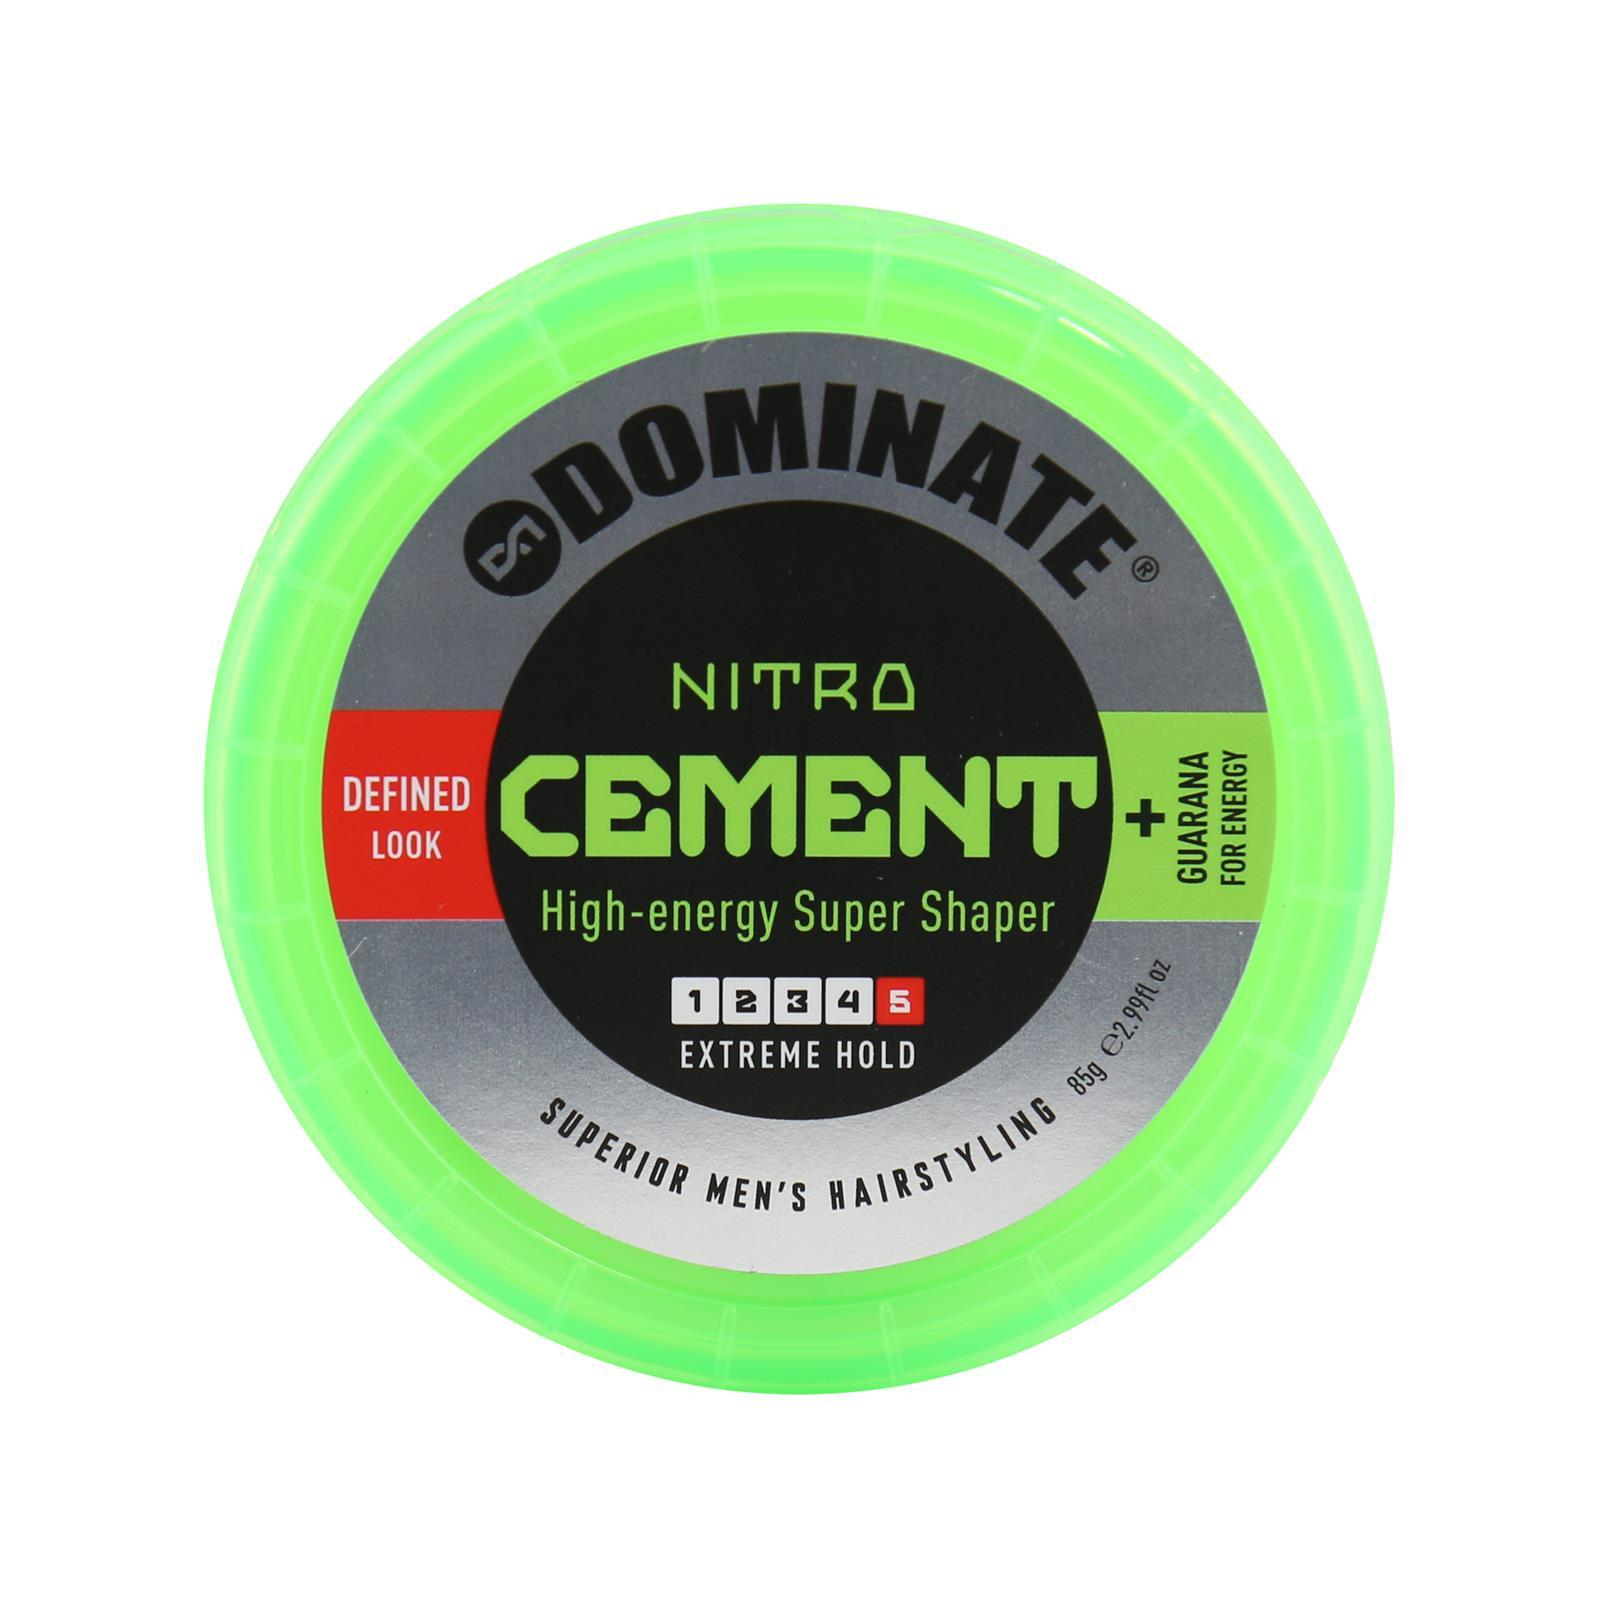 Nitro Cement Hair Styling Paste 85g Corlison